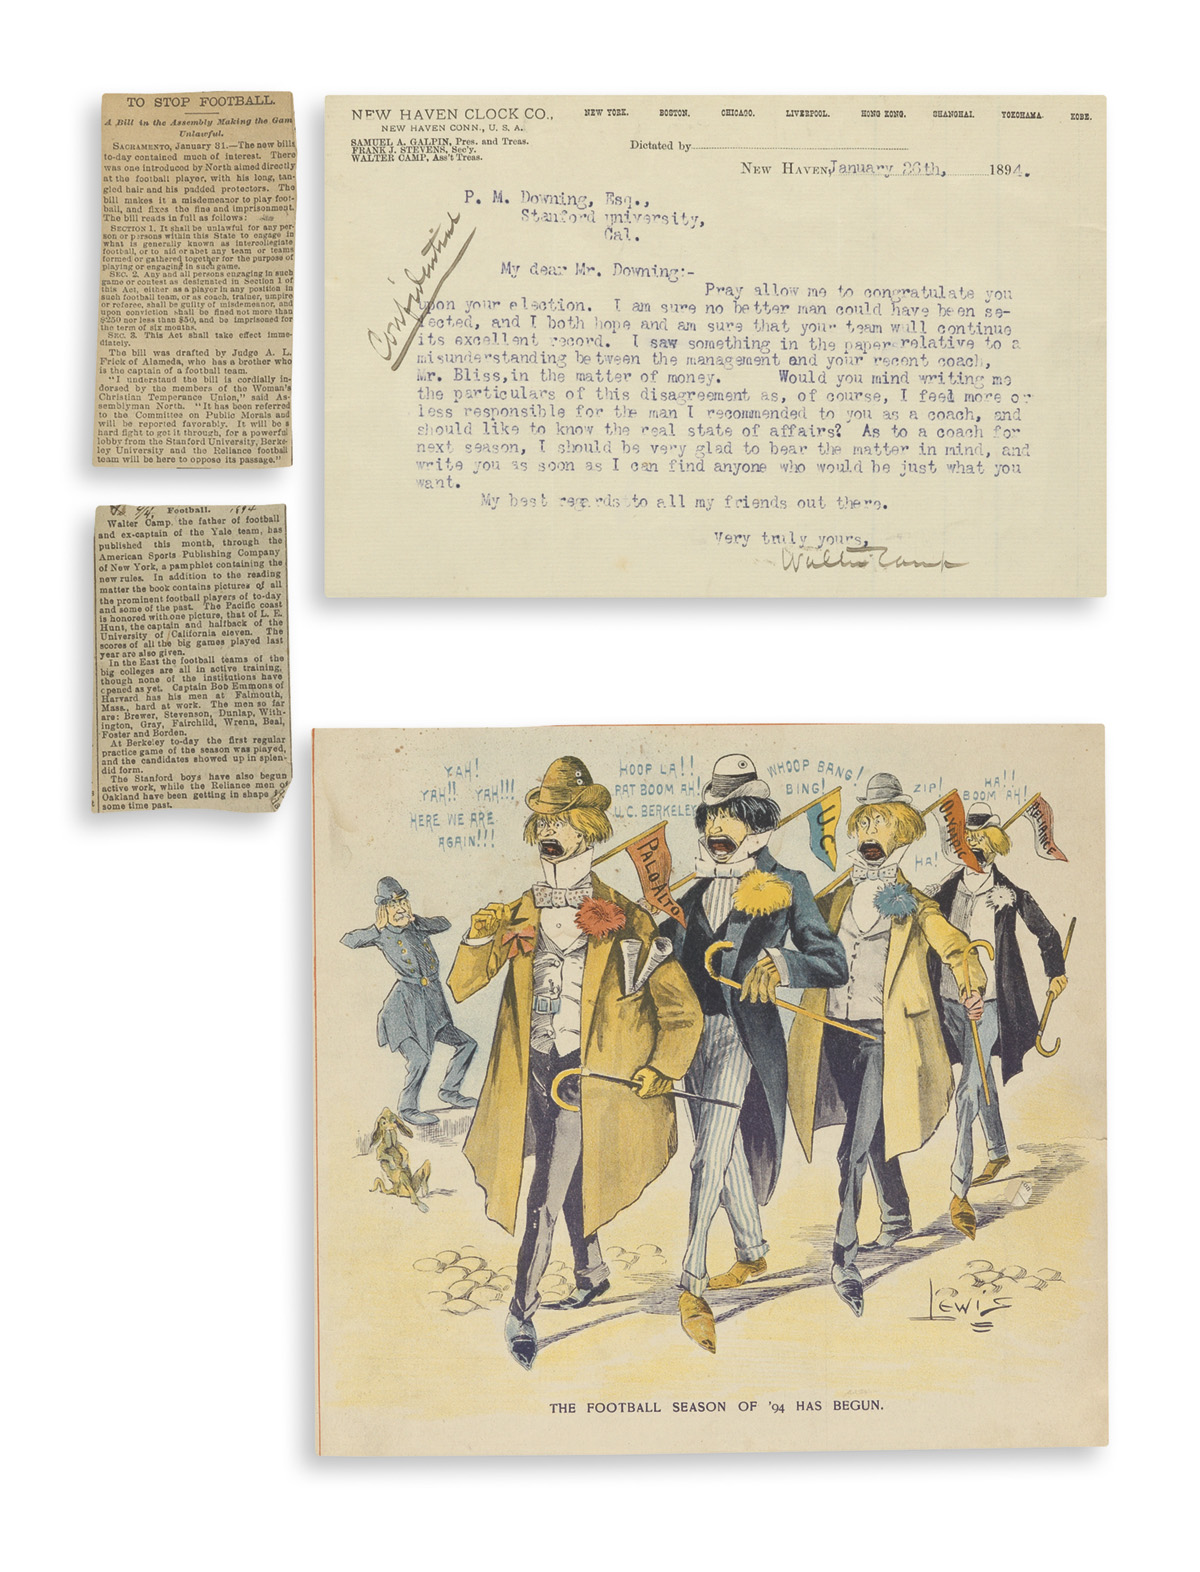 (SPORTS--FOOTBALL.) Scrapbook on early Stanford football, including letters from Walter Camp.